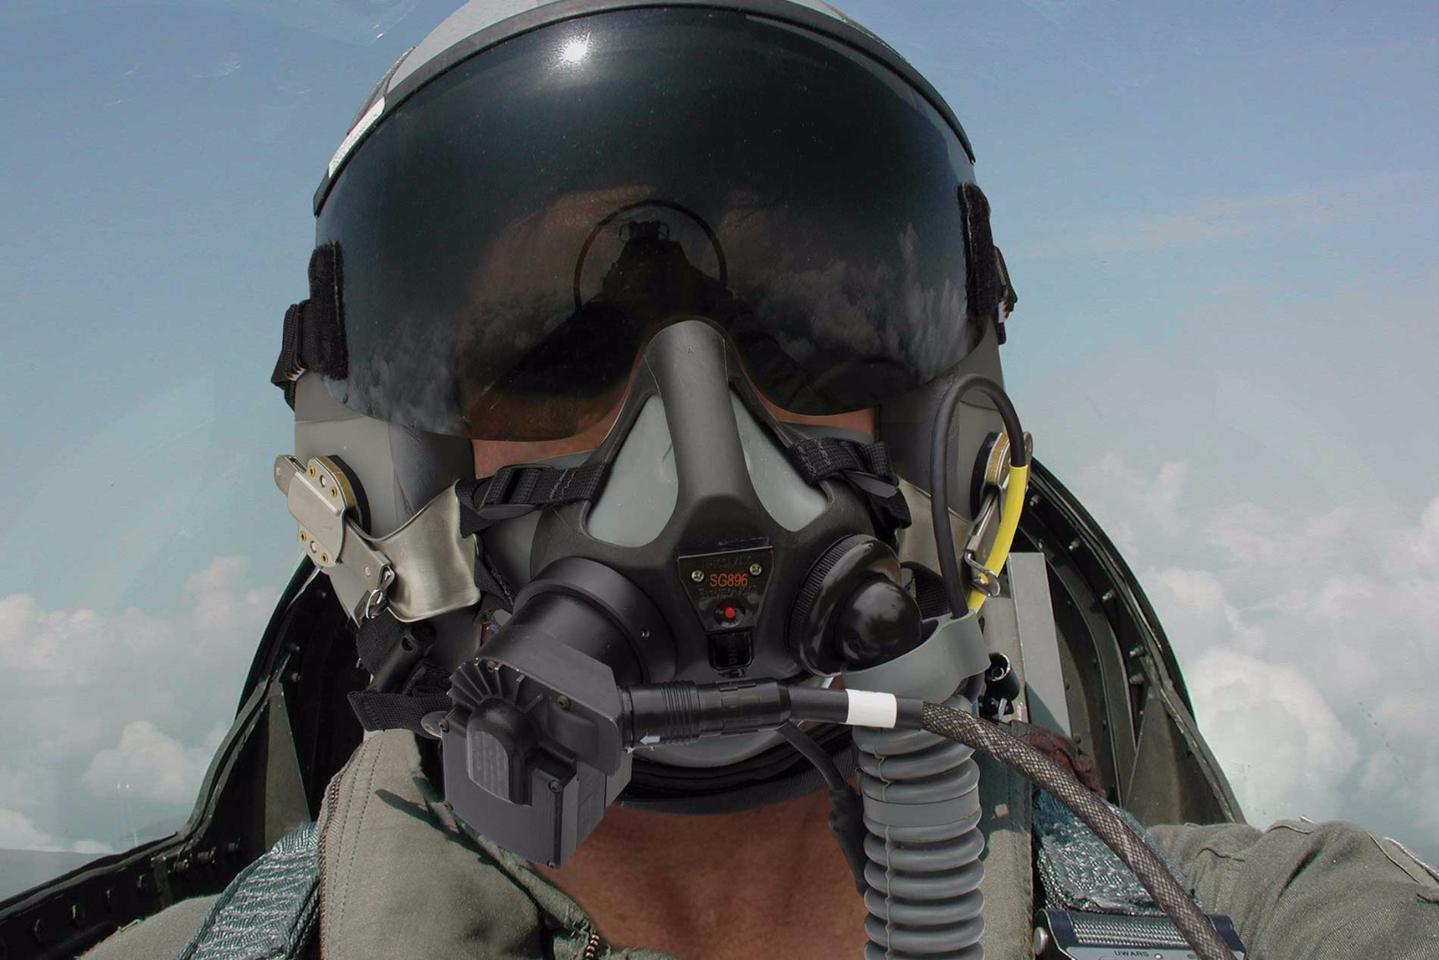 Cobham'sAMPSS 2.6is a breathing sensor suite that measures the level and purity of oxygen that the pilot inhales and exhales